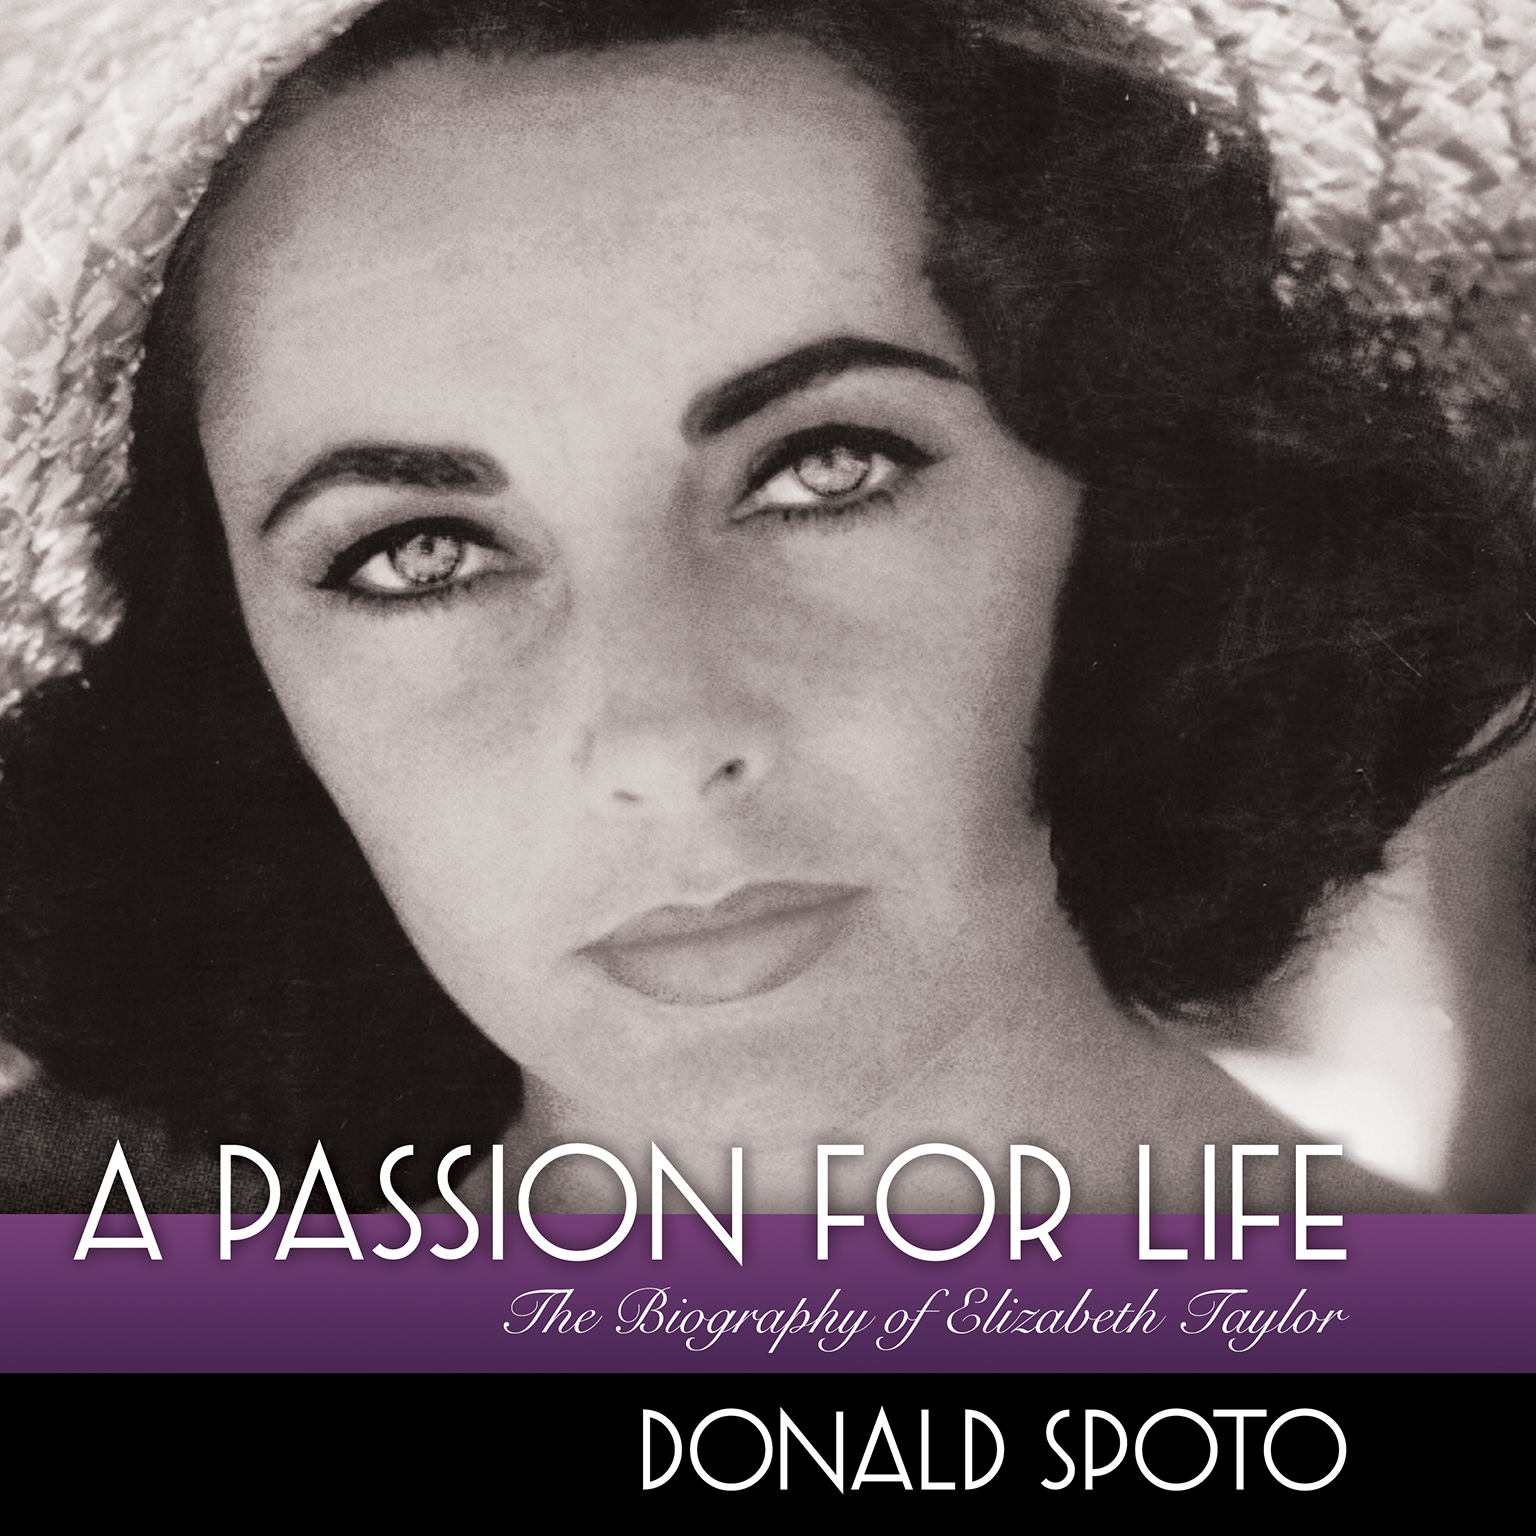 A Passion For a passion for life: the biography of elizabeth taylor audiobook